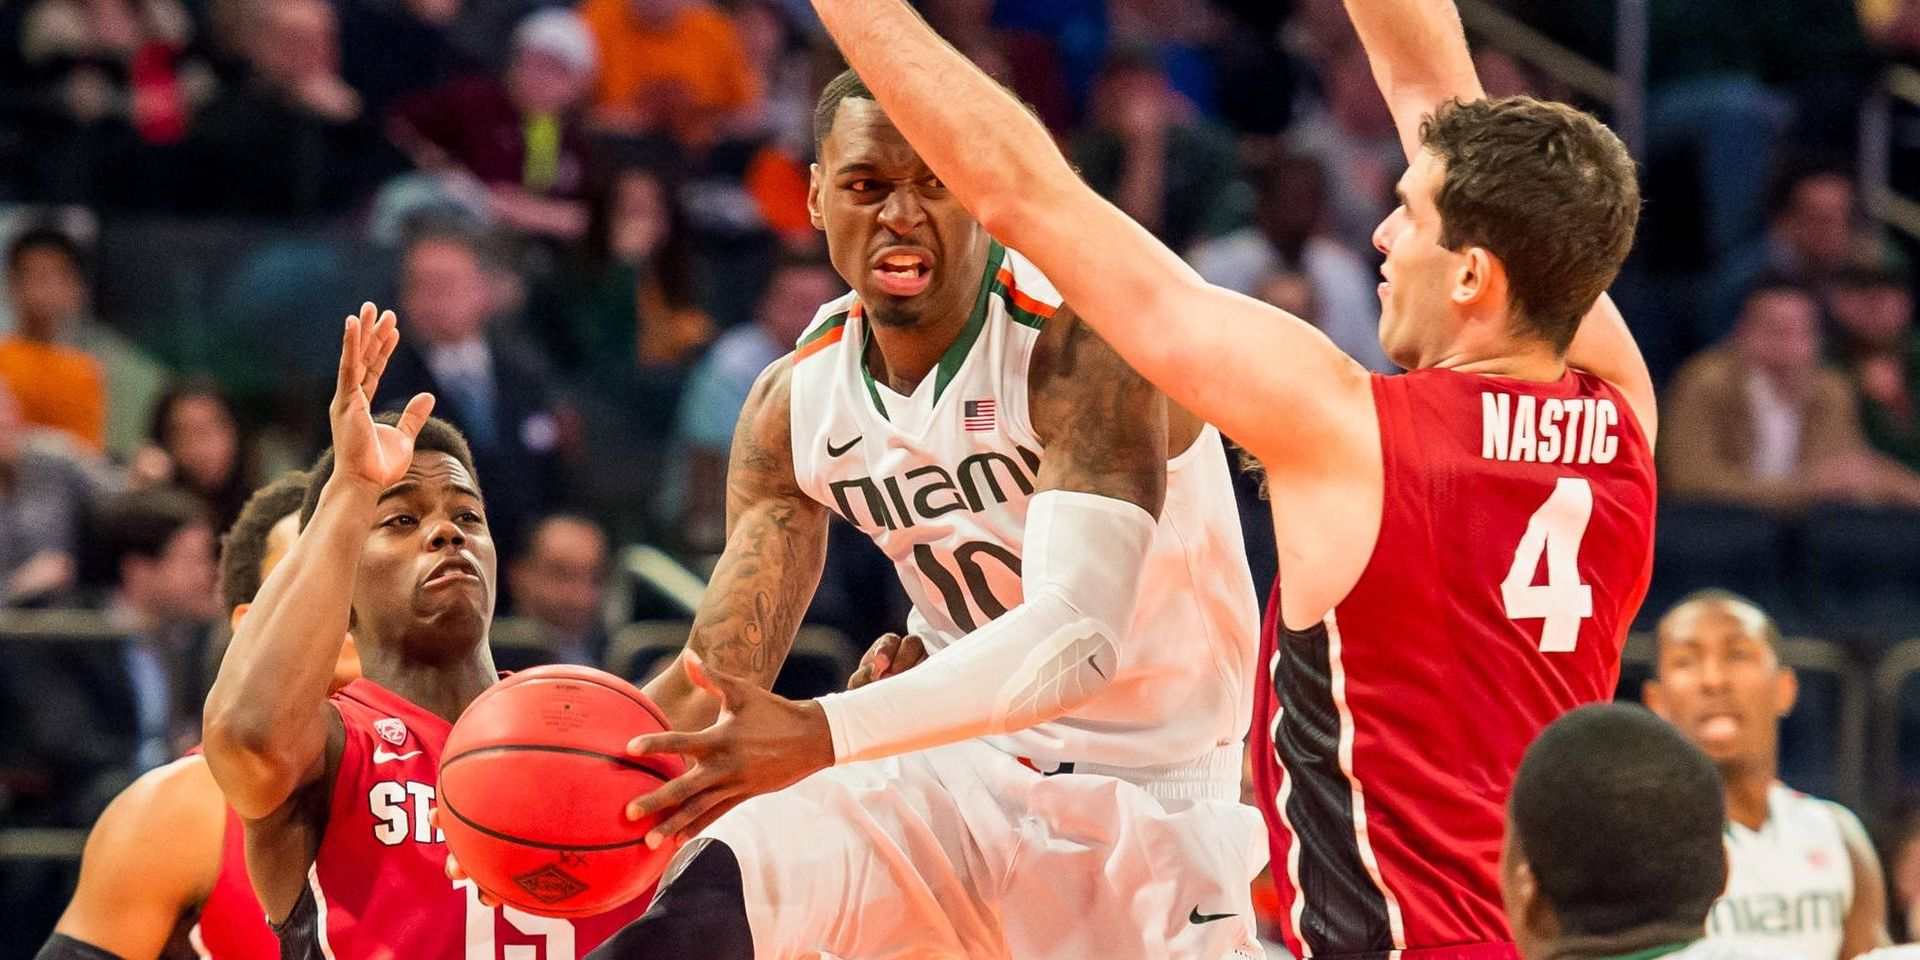 @CanesHoops Falls in OT to Stanford, 66-64